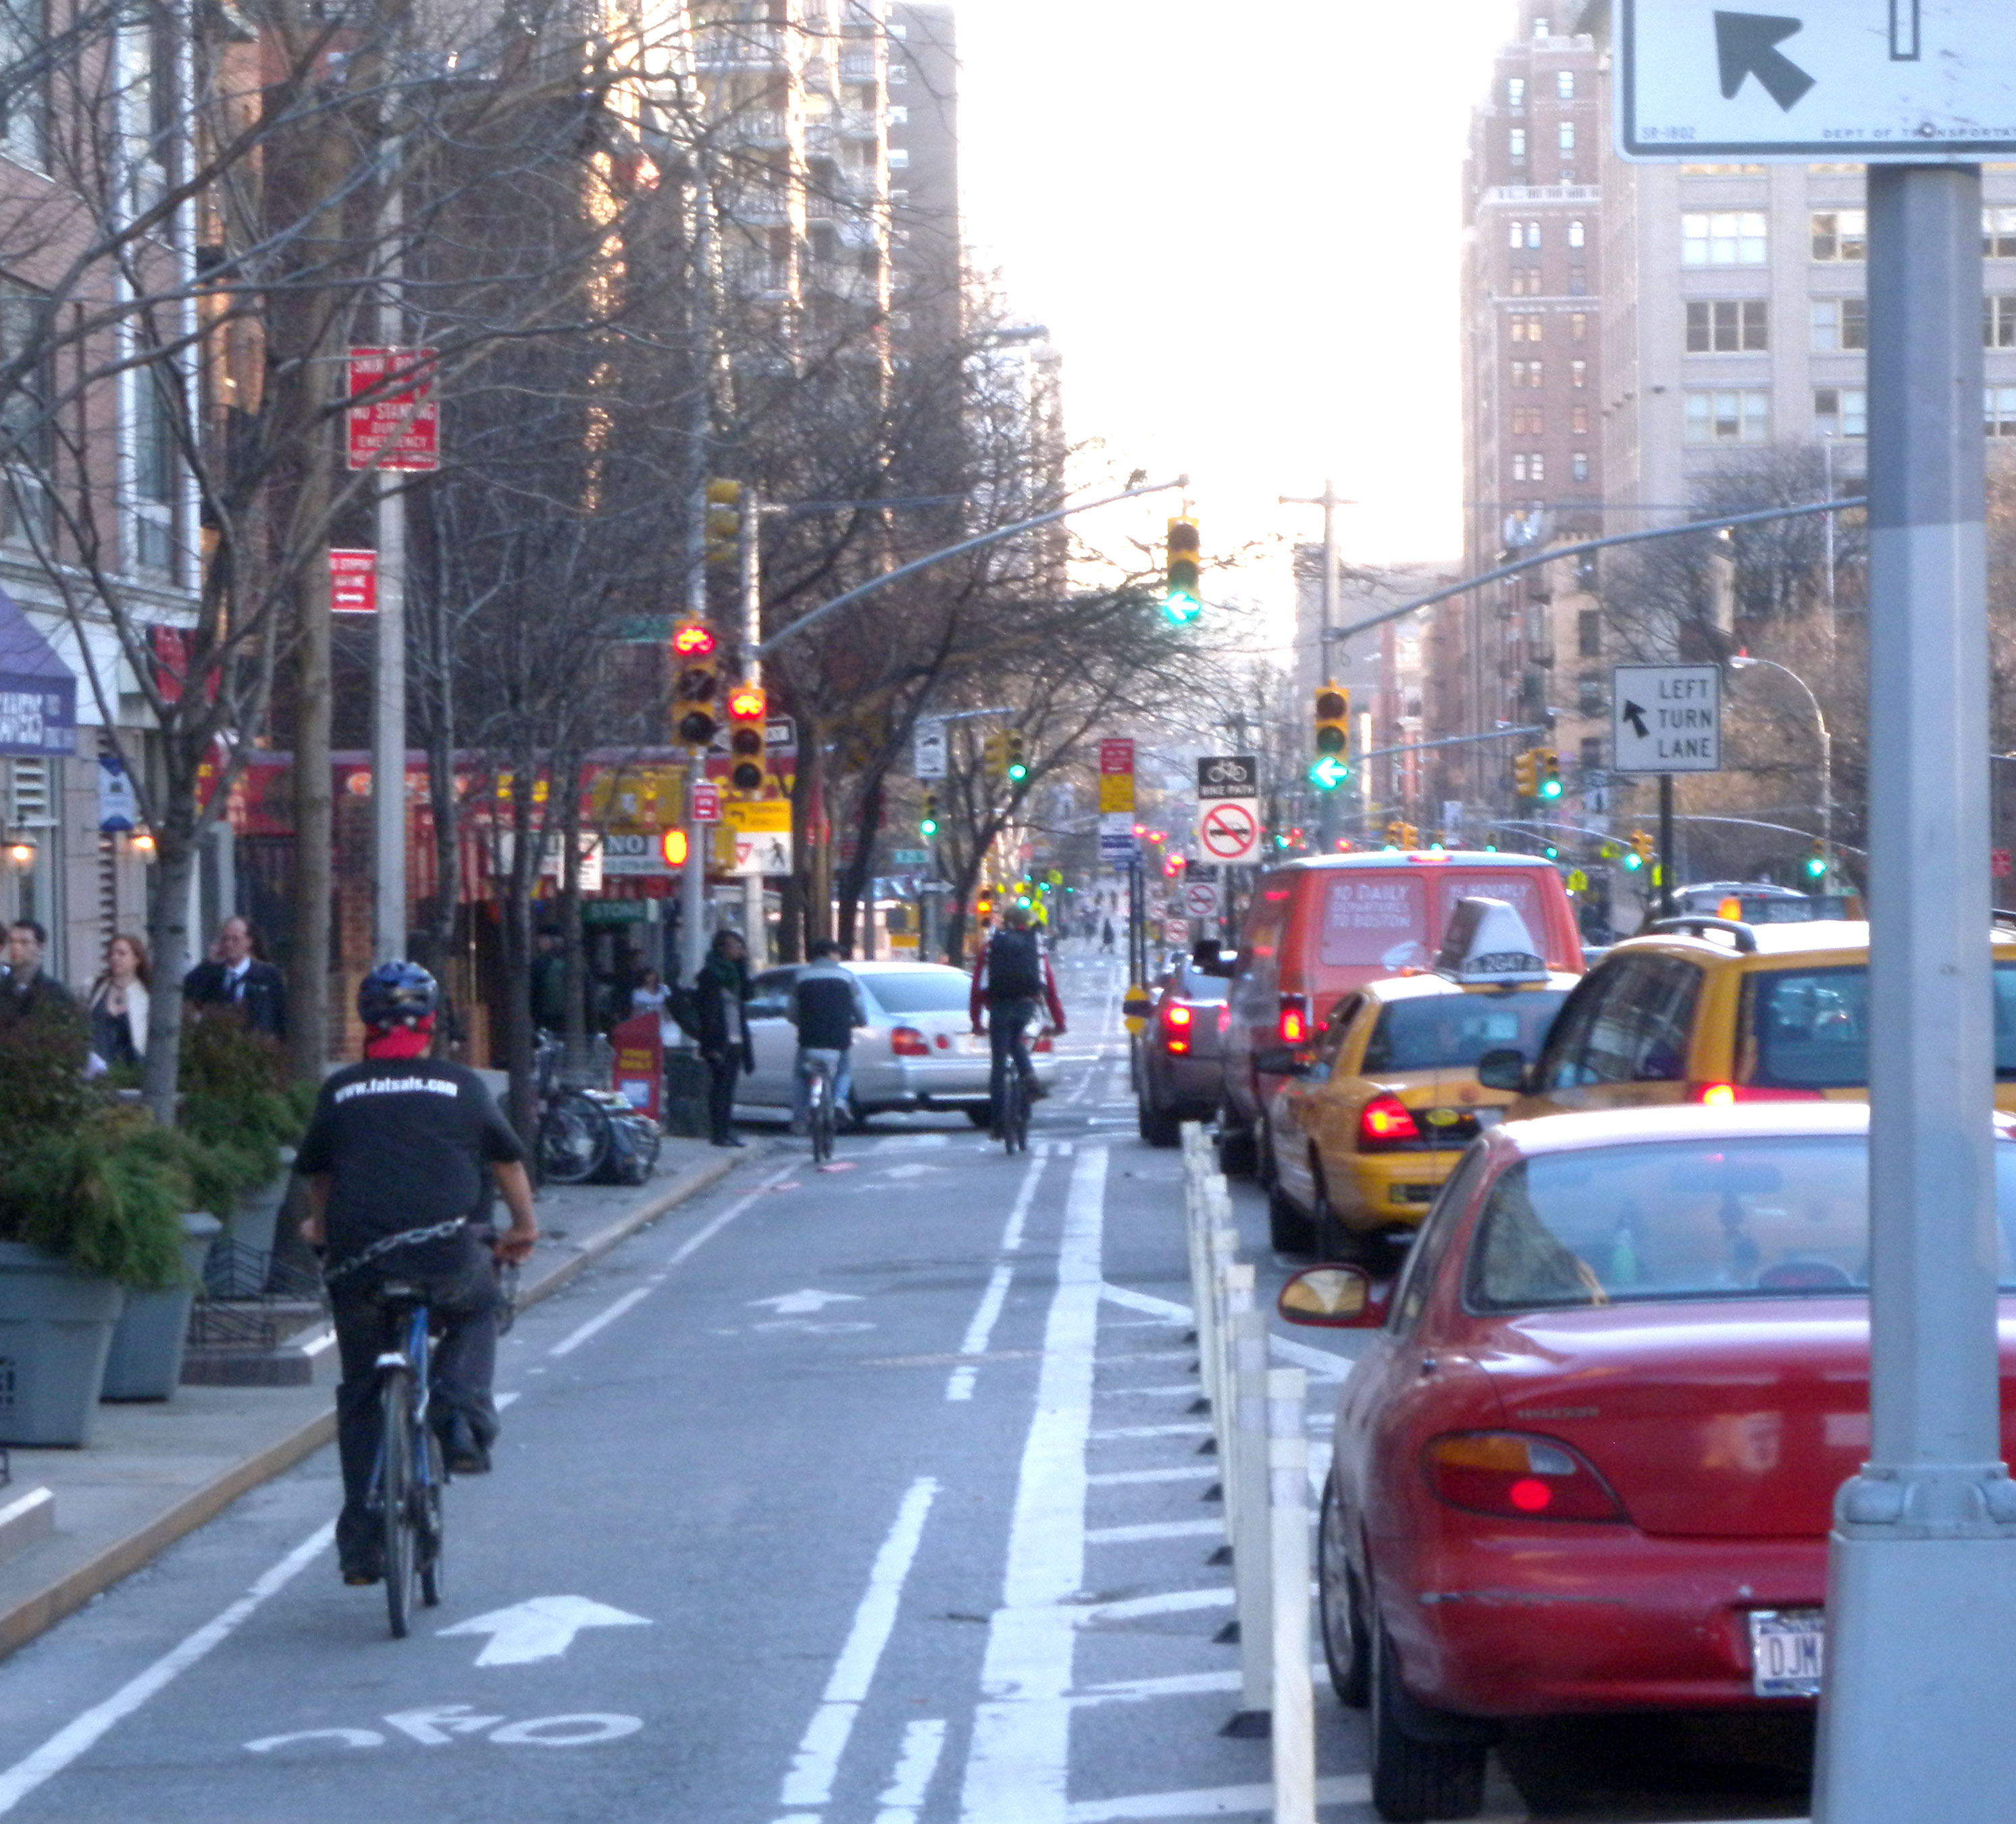 http://upload.wikimedia.org/wikipedia/commons/6/6c/9th_Av_30_St_bikelane_jeh.jpg